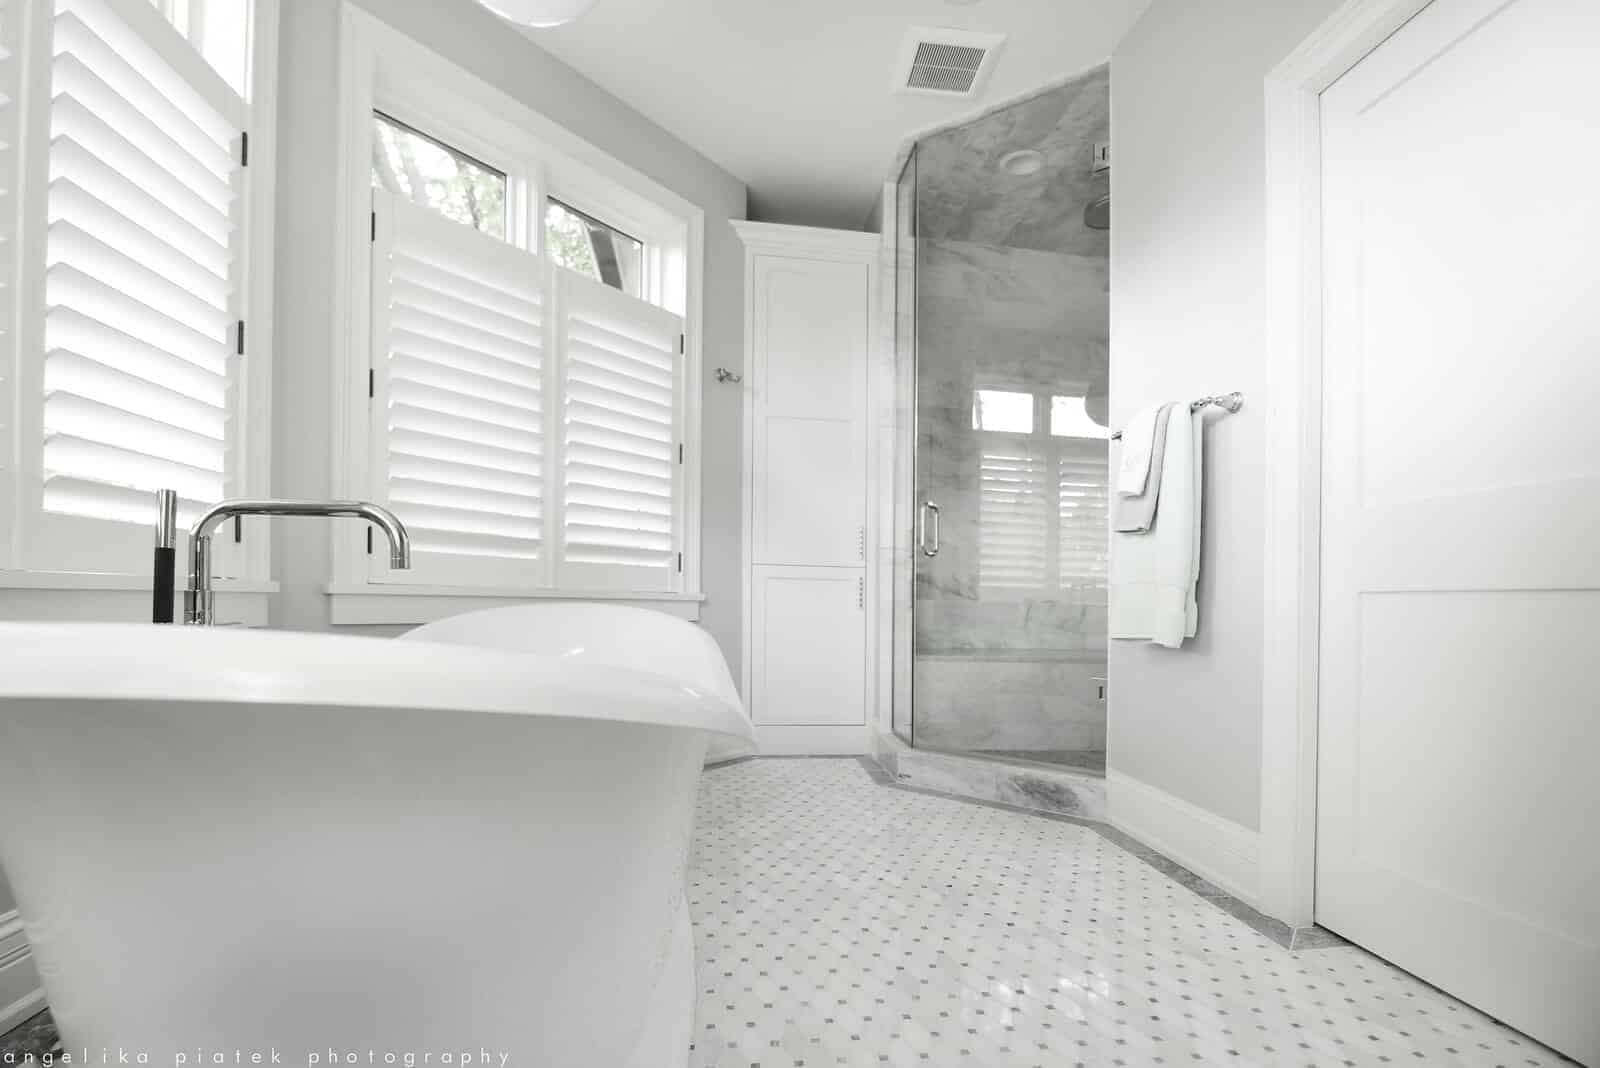 Contact our experts about your bathroom remodeling project today